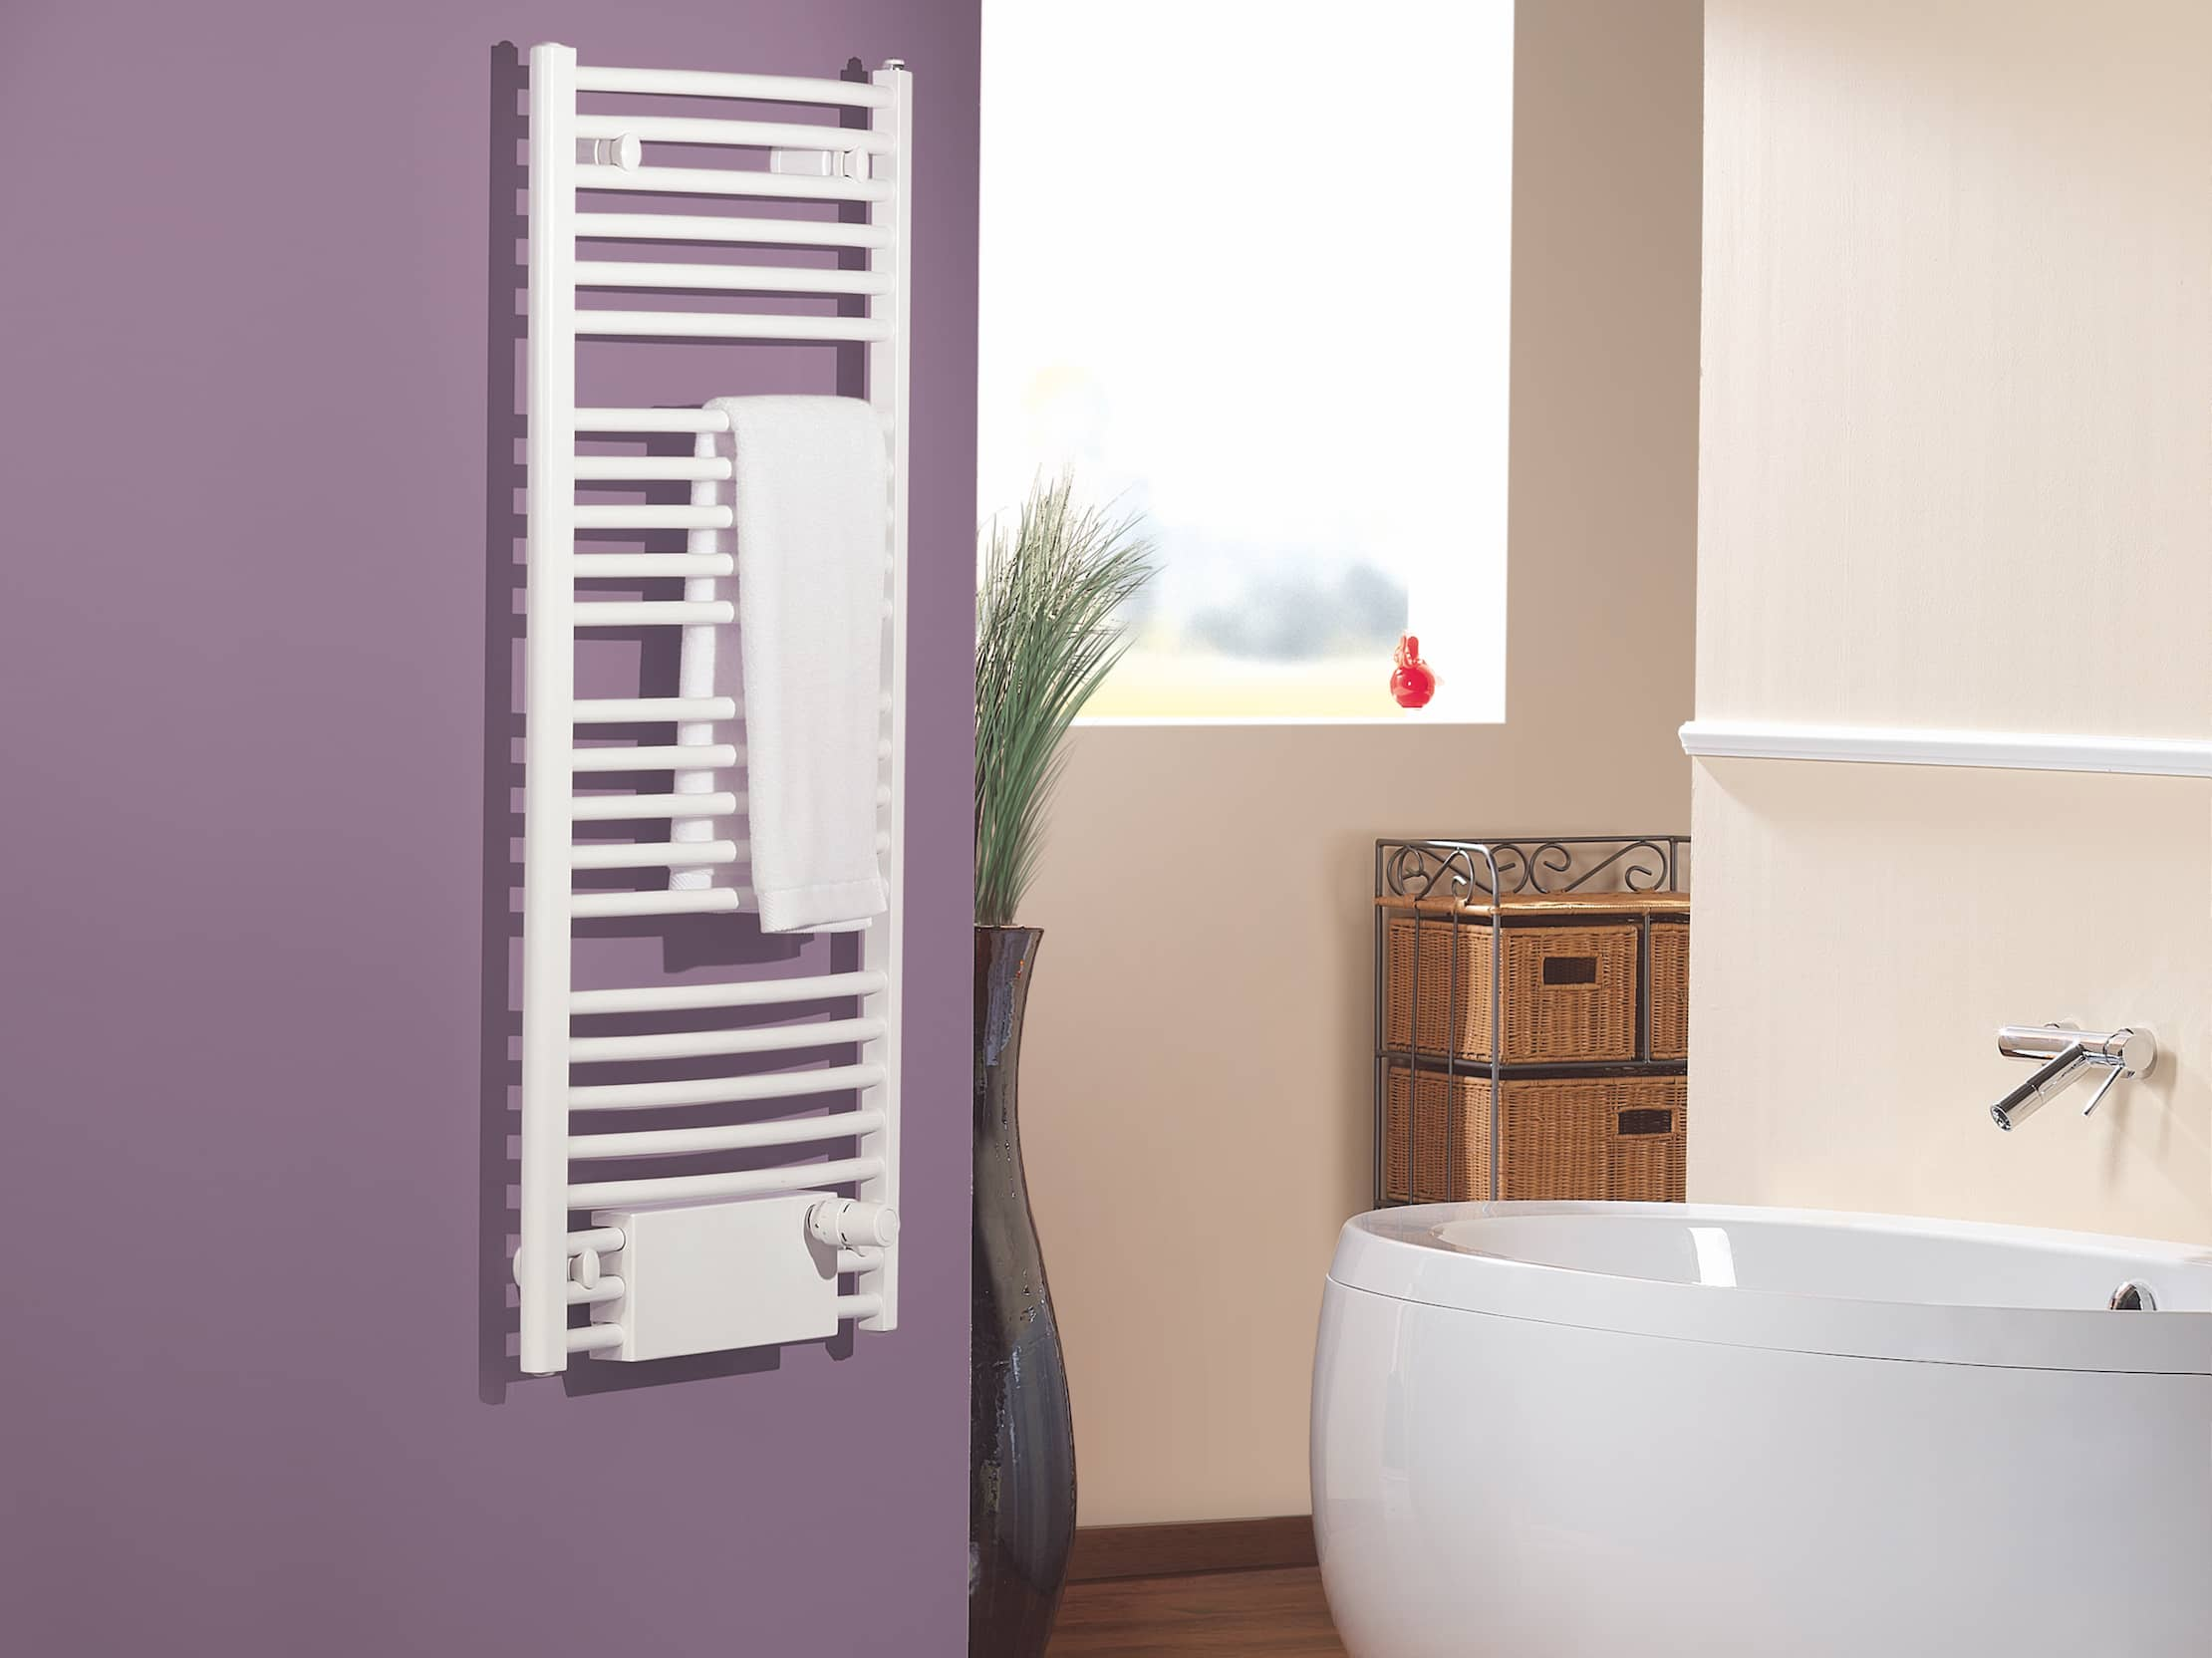 The white towel radiator, mounted on purple wall in the bathroom of a house.